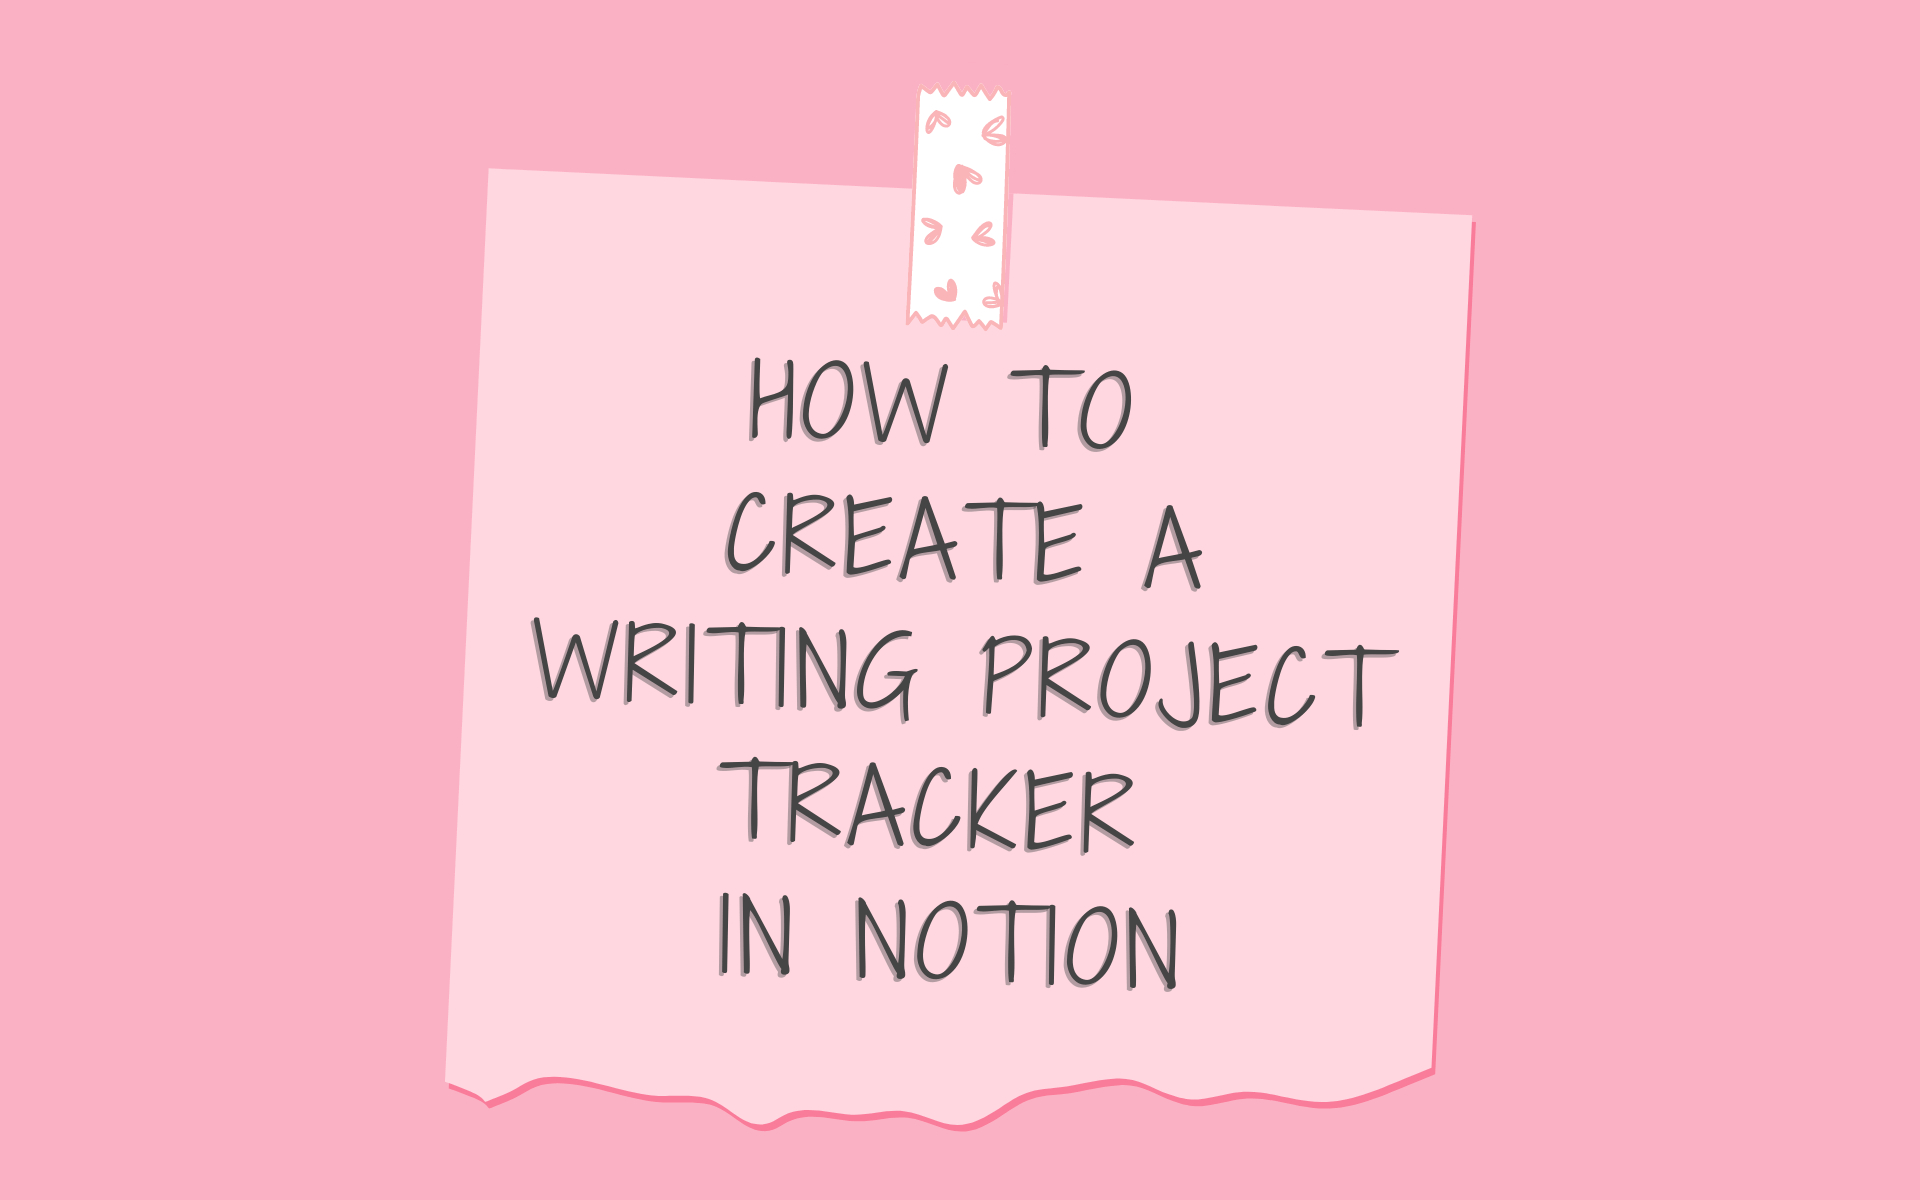 how to create a notion writing project tracker featured image for blog post